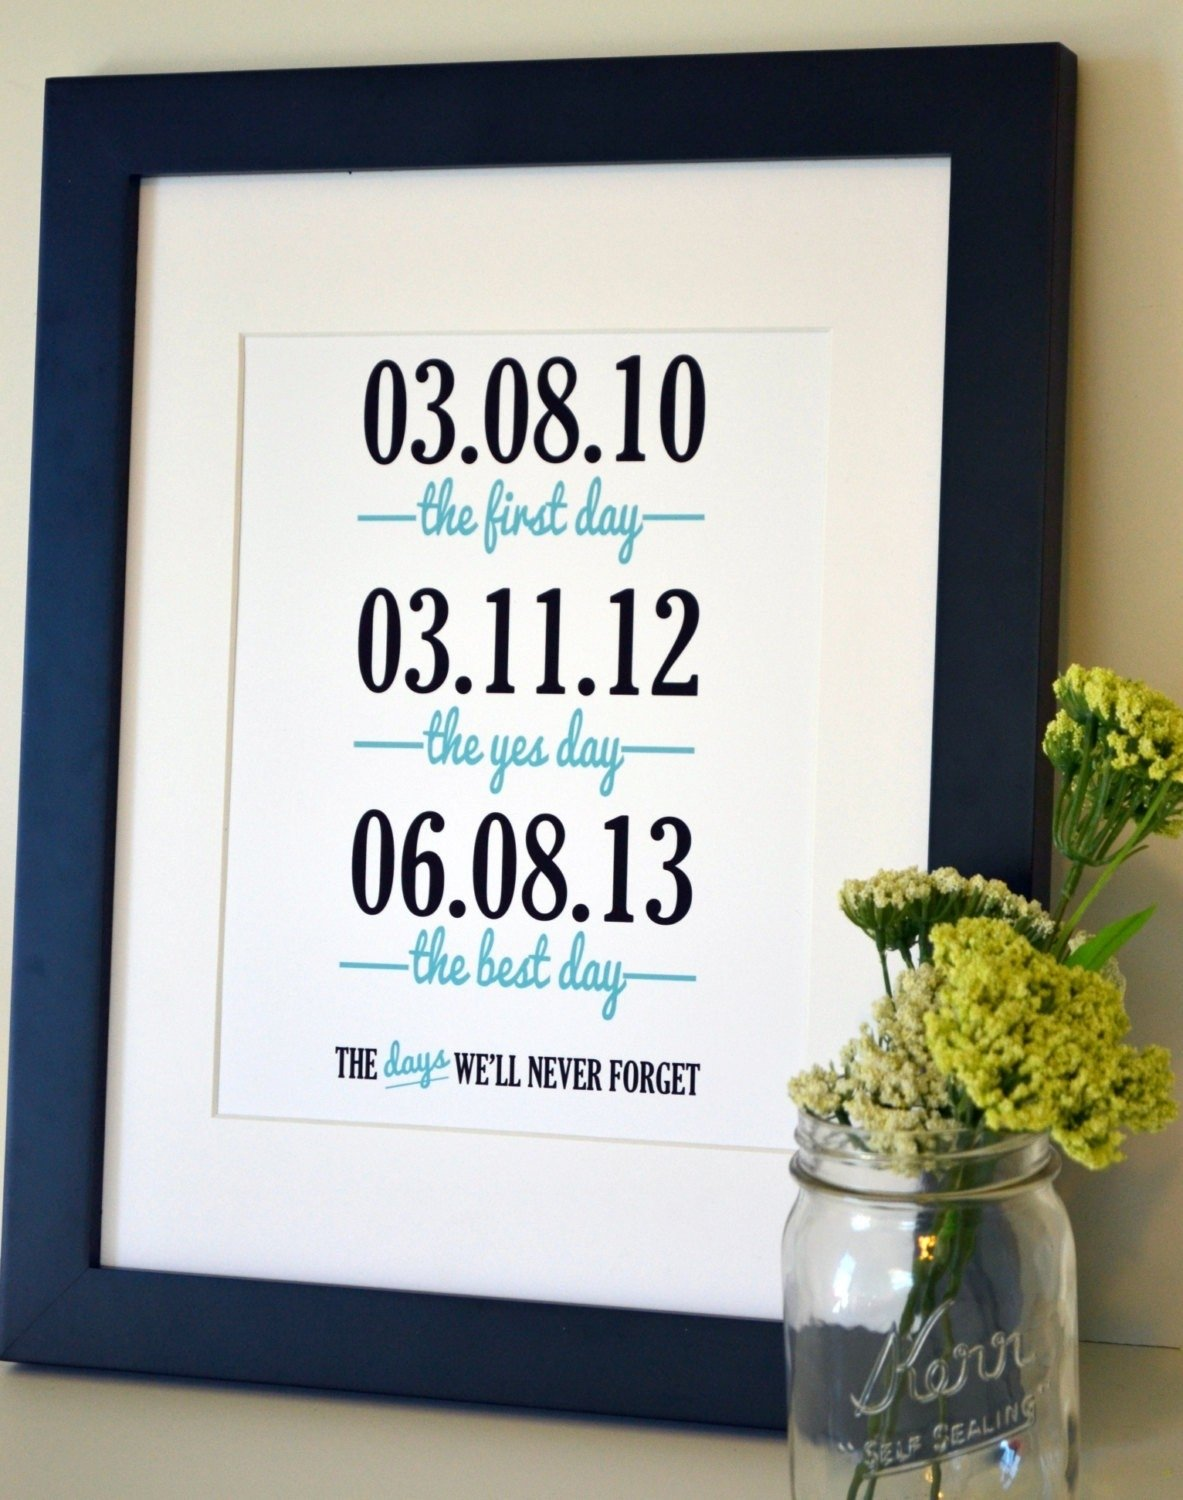 10 Awesome 10Th Anniversary Ideas For Him 6 year wedding anniversary gift ideas luxury 6 year wedding 2020